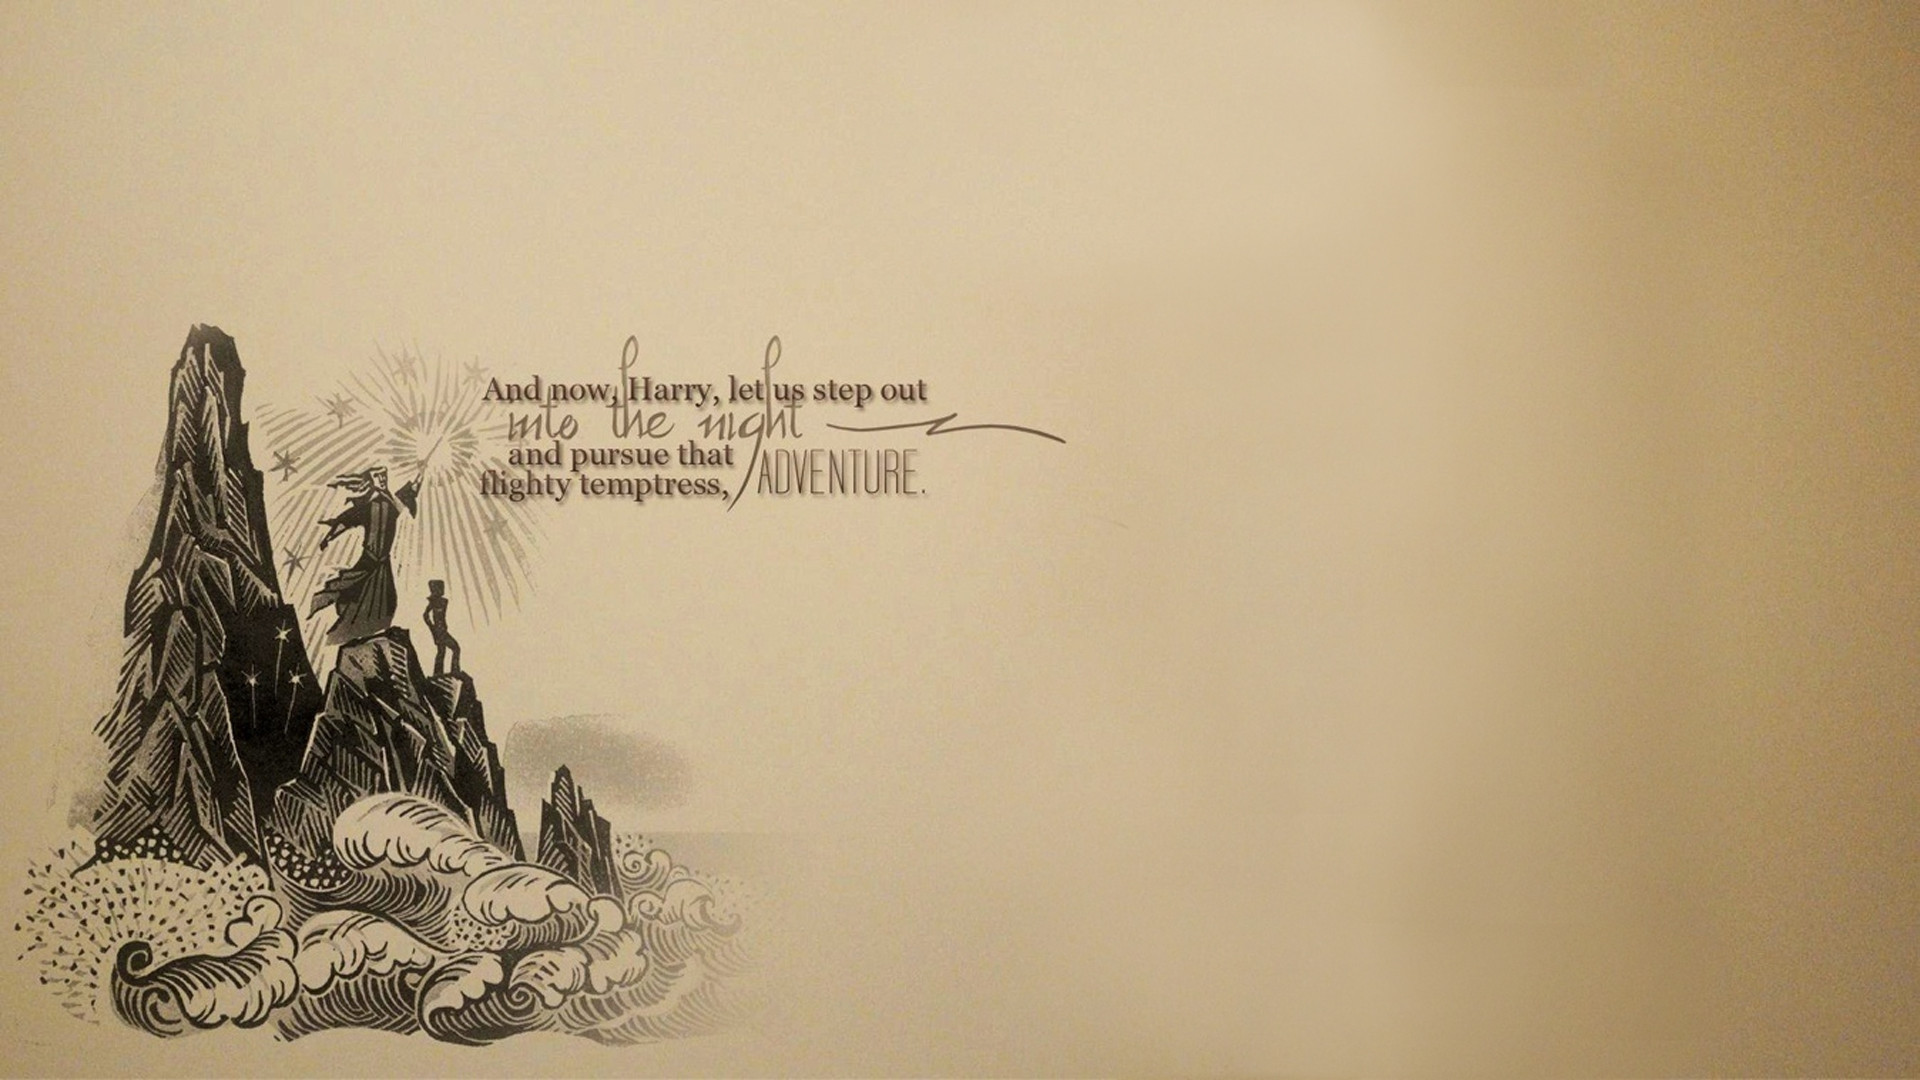 Quotes From Harry Potter Wallpaper. QuotesGram